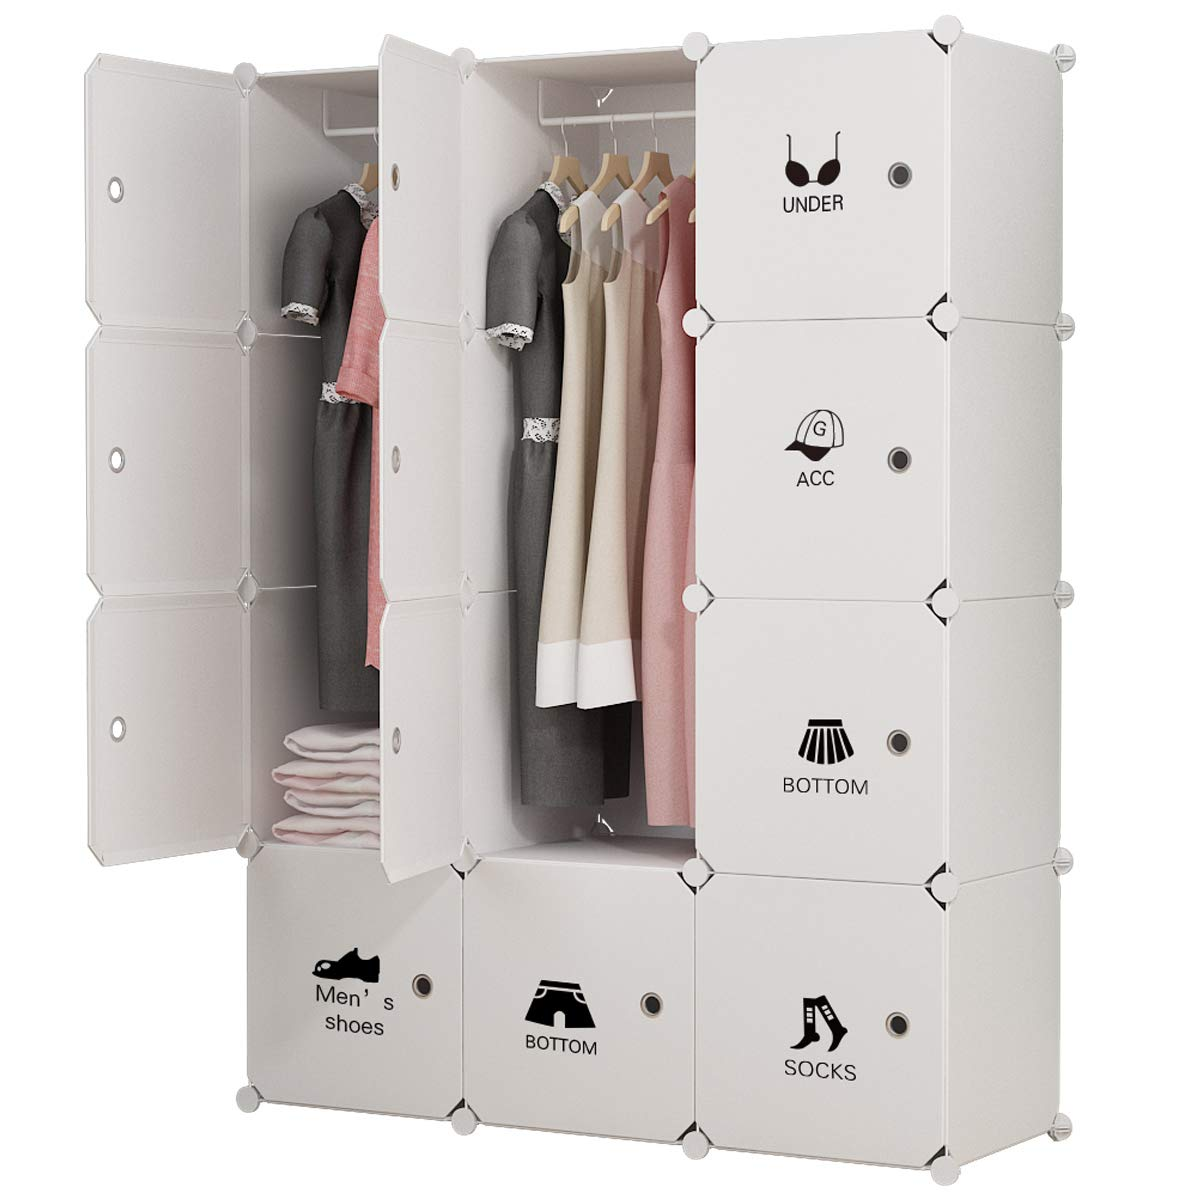 KOUSI Portable Clothes Closet Wardrobe Bedroom Armoire Dresser Cube Storage Organizer, Capacious & Customizable, White, 6 cubes&2 Hanging Sections xm022-002